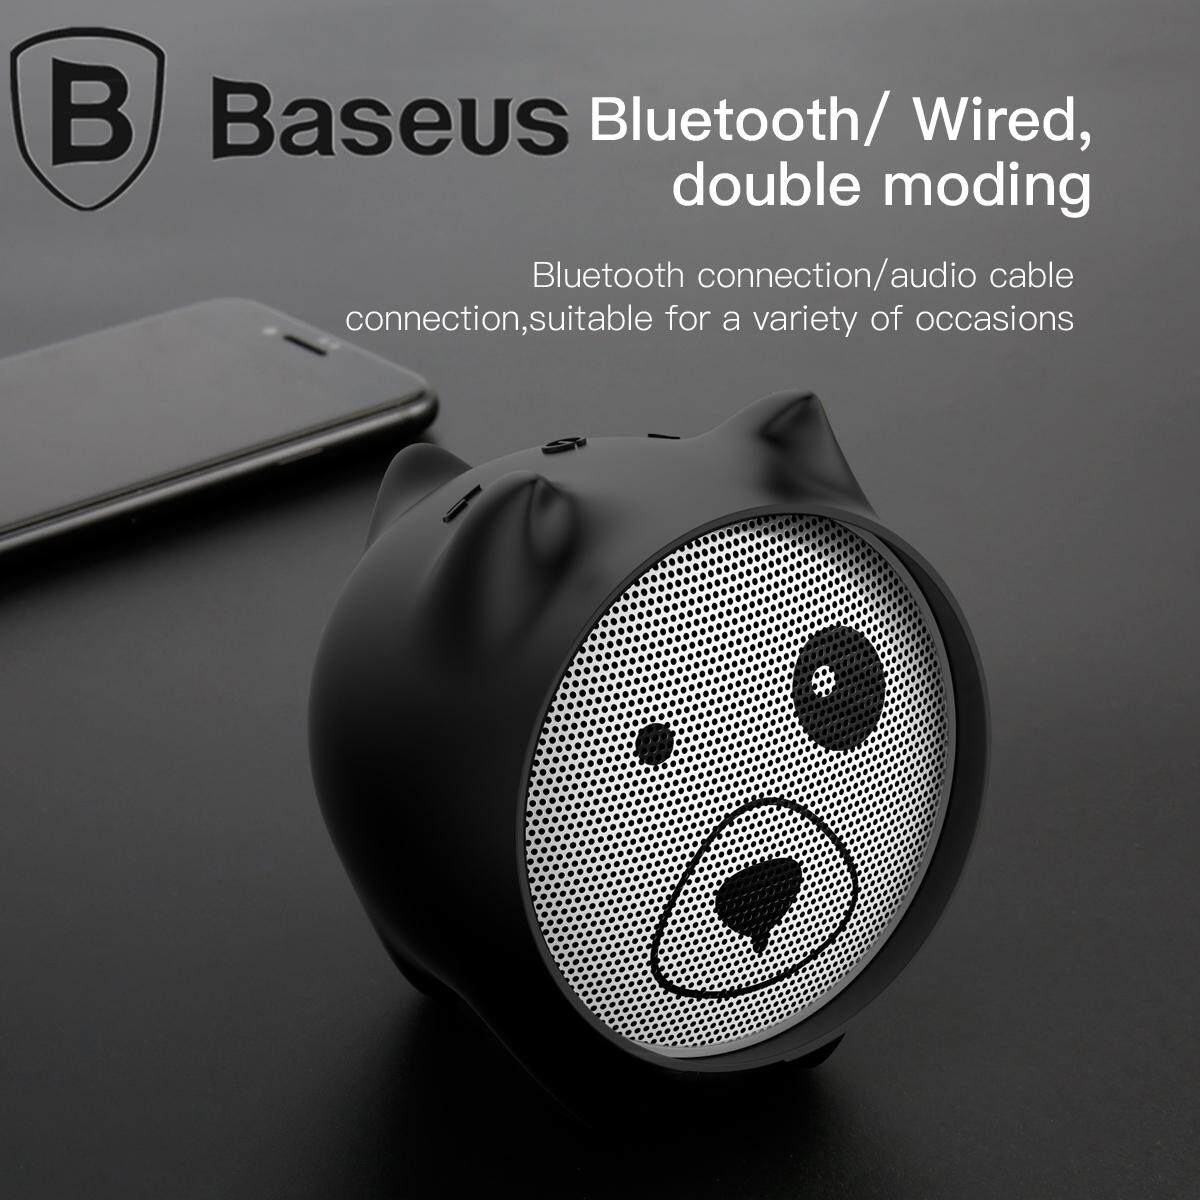 BASEUS Q E06 Lovely Dog Shaped Bluetooth Speaker with Mic / AUX-in for  iPhone Samsung Huawei Etc